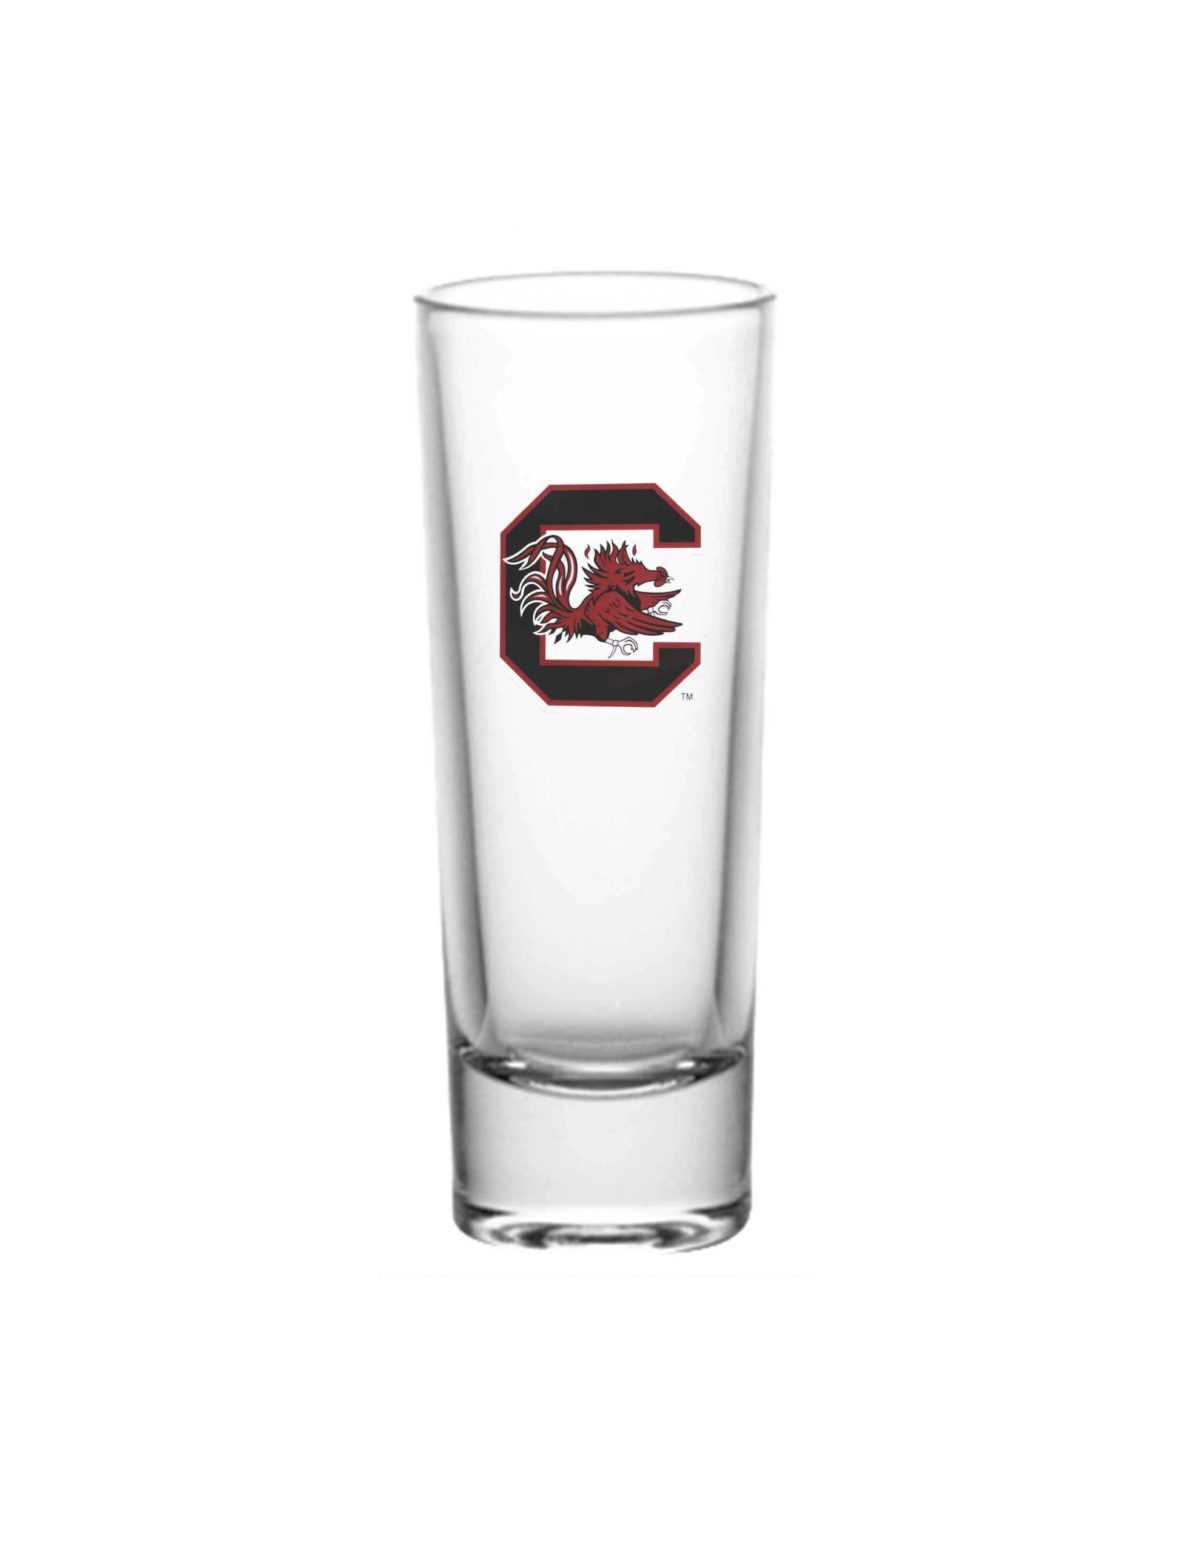 USC South Carolina Gamecocks shooter shot glass Barefoot Campus Outfitter